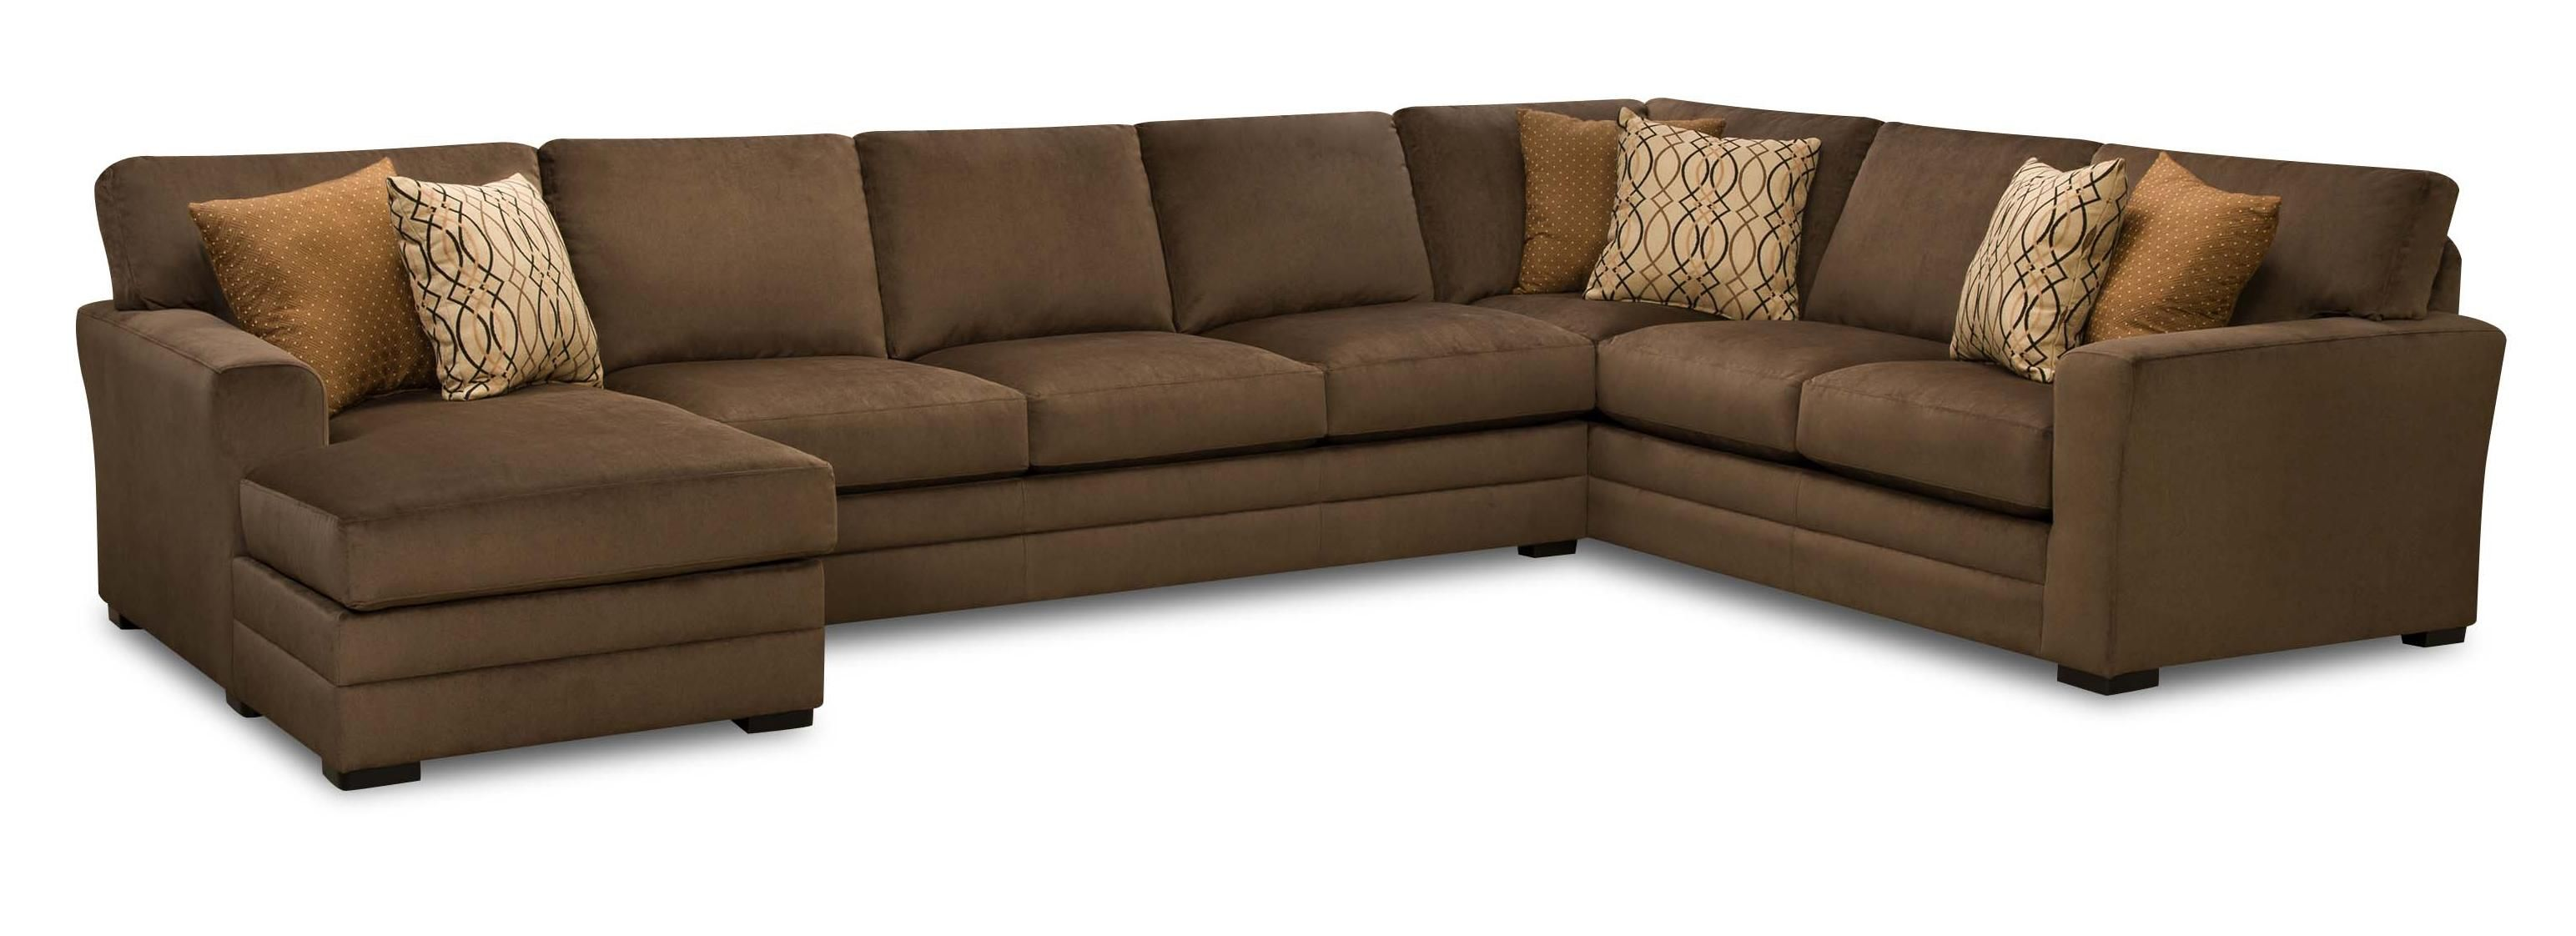 90350 Transitional 3 Piece Sectional Sofa By United Furniture Industries Becks  Furniture